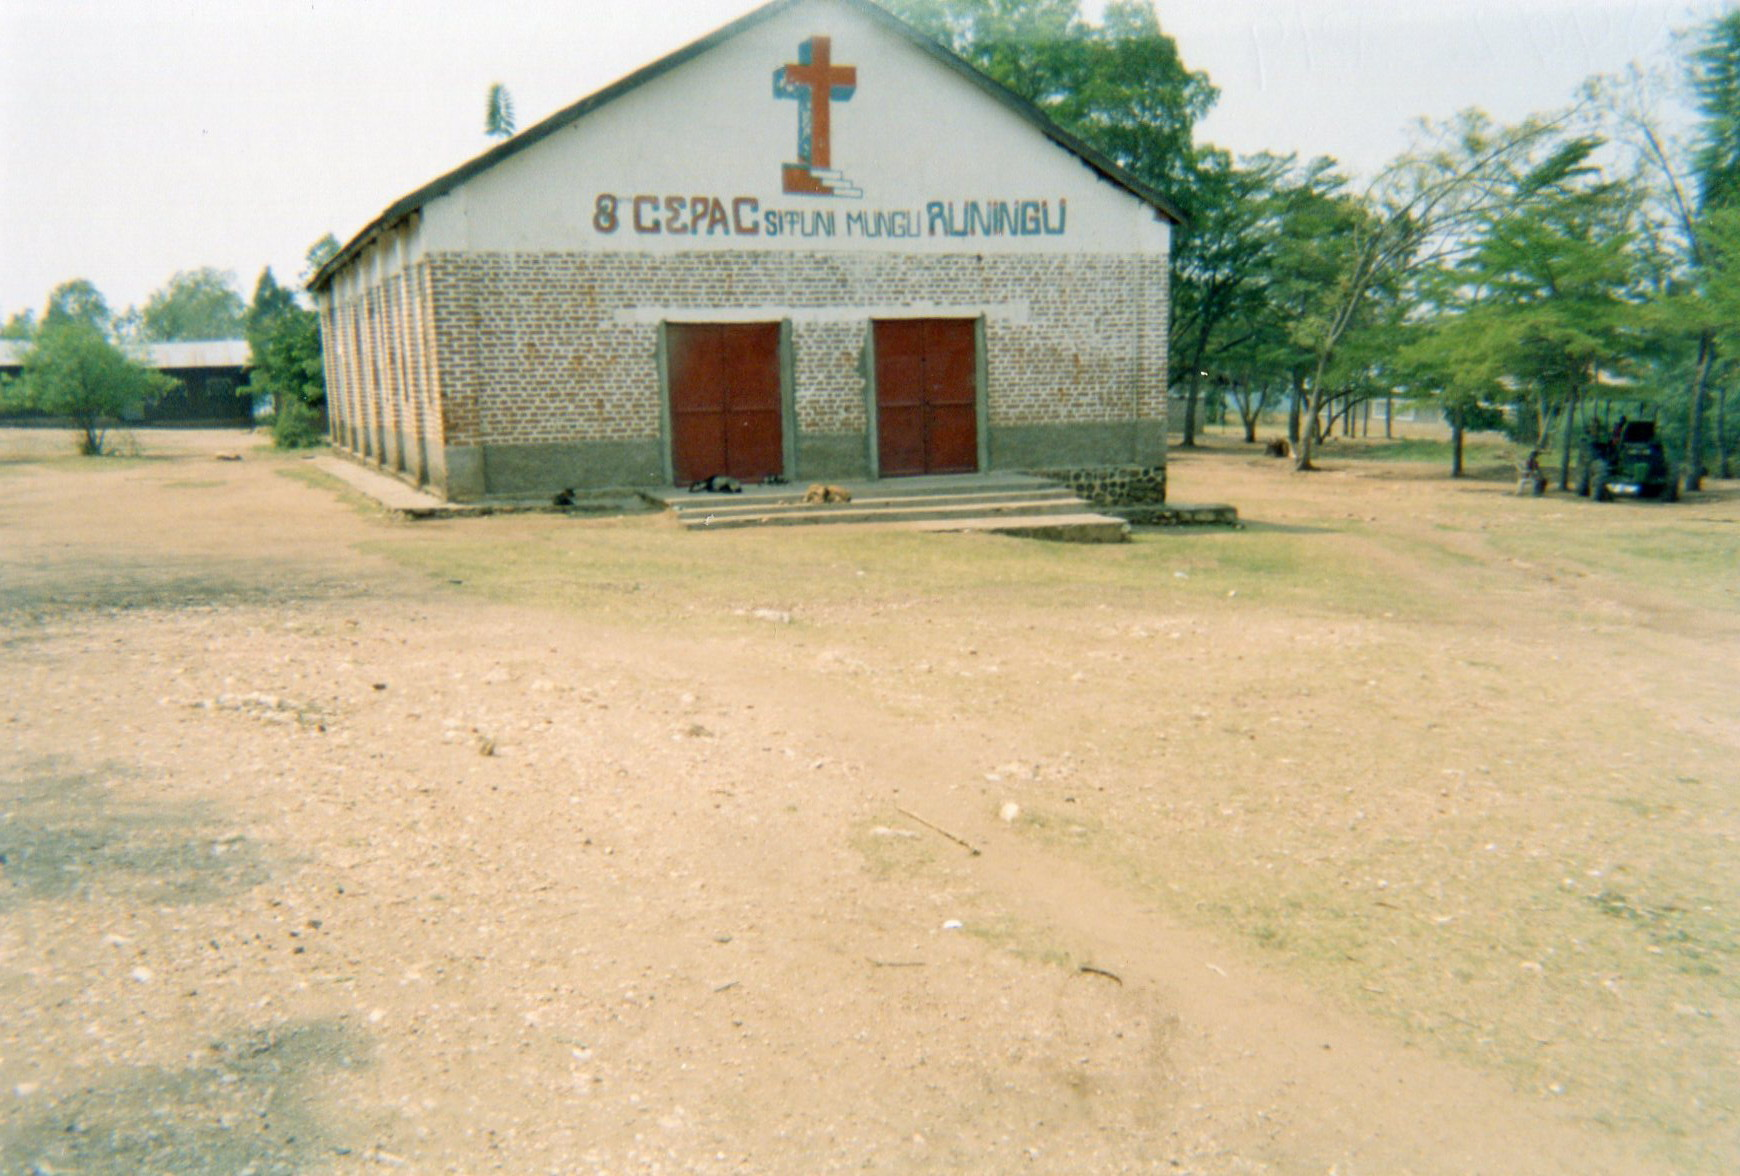 This photo shows the church where I was baptised and where I discovered God as my Saviour after leaving the armed groups.